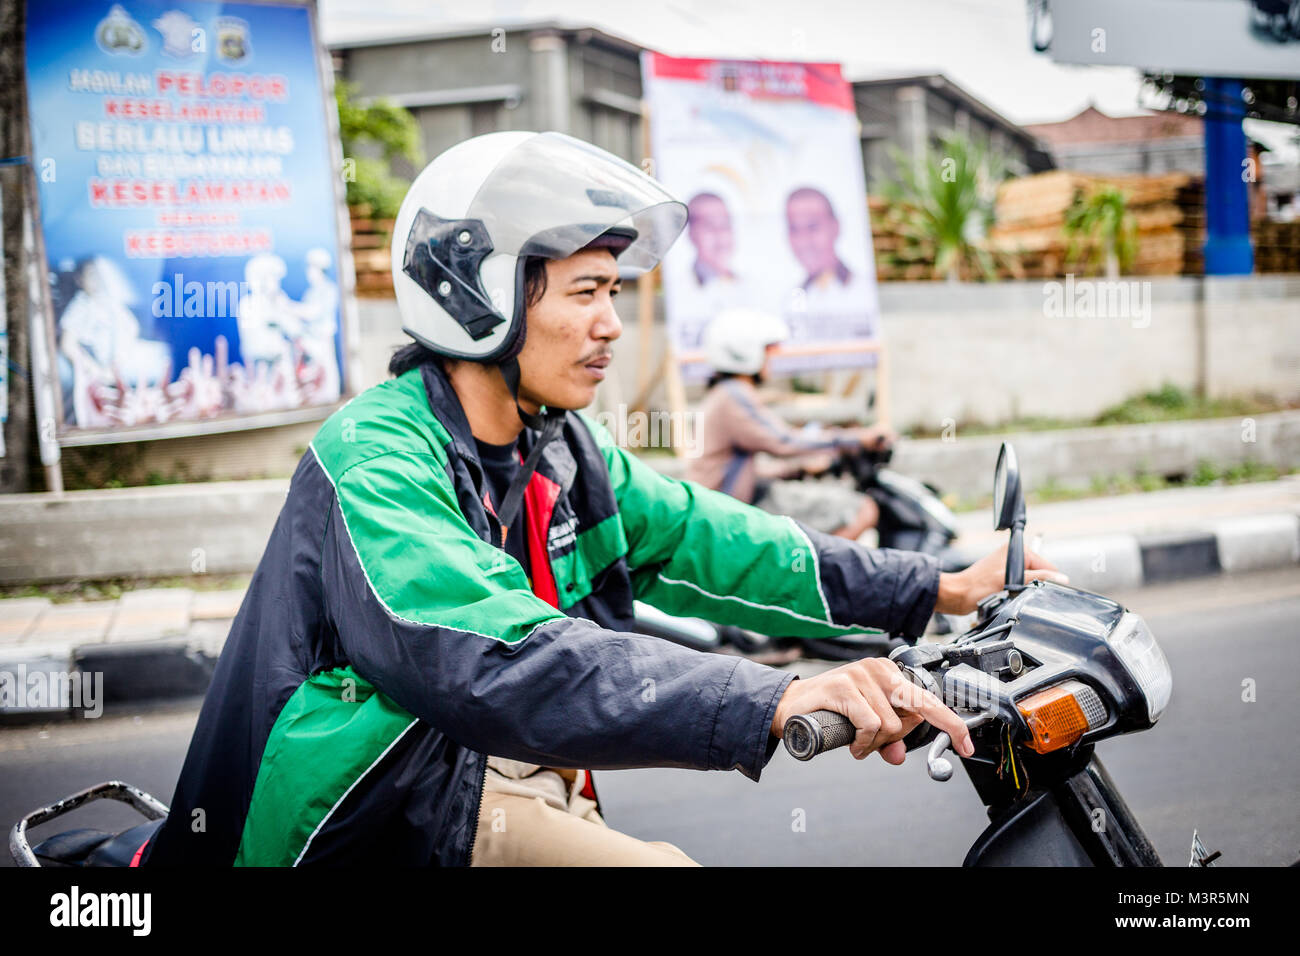 Bali, Indonesia, 28 August 2013: Traffic on streets of Bali Stock Photo